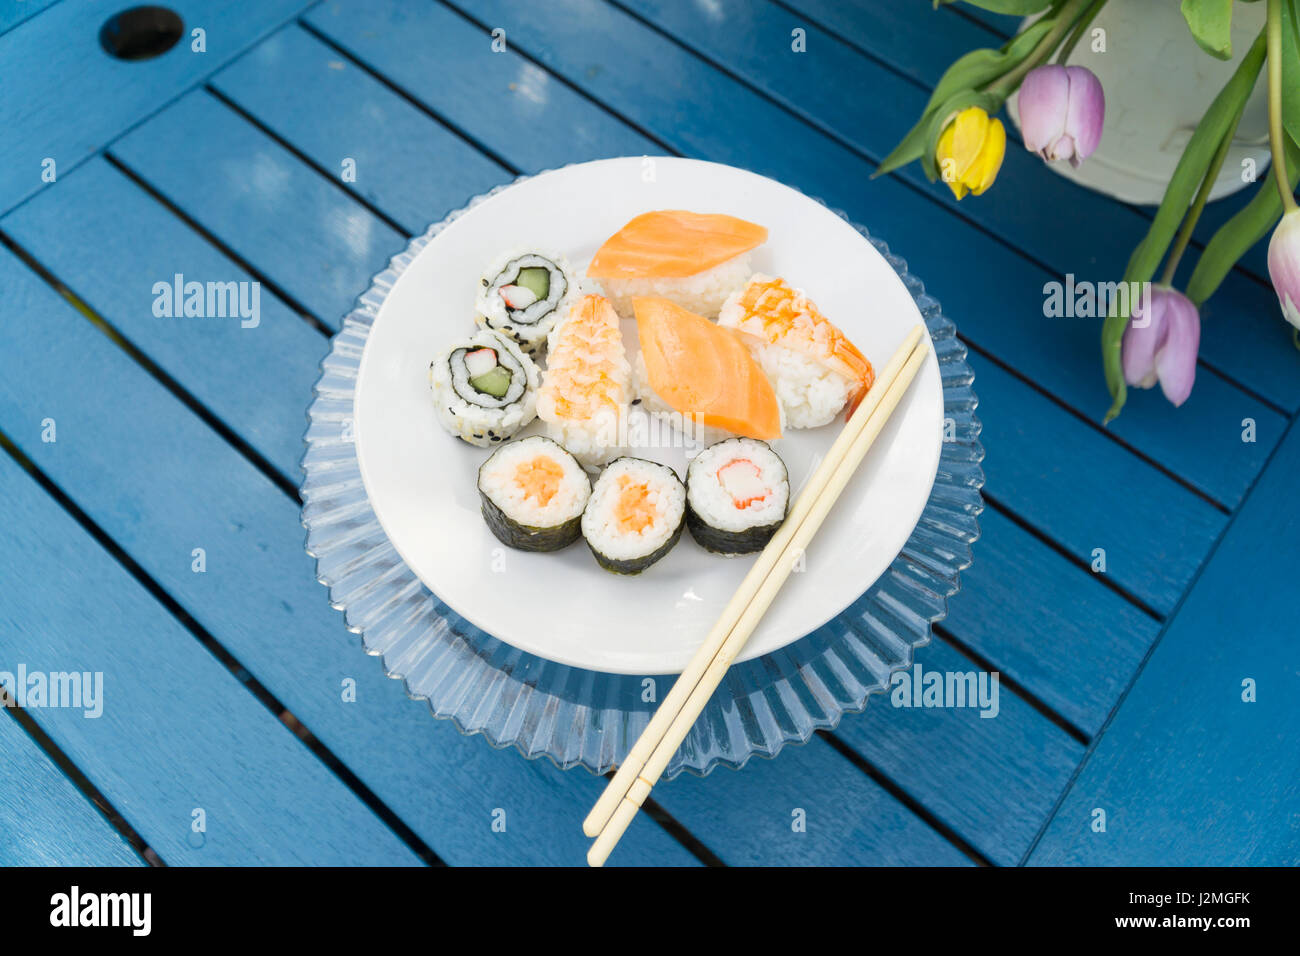 Display of sushi on a plate on a blue table in a garden with daffodils in a can - Stock Image